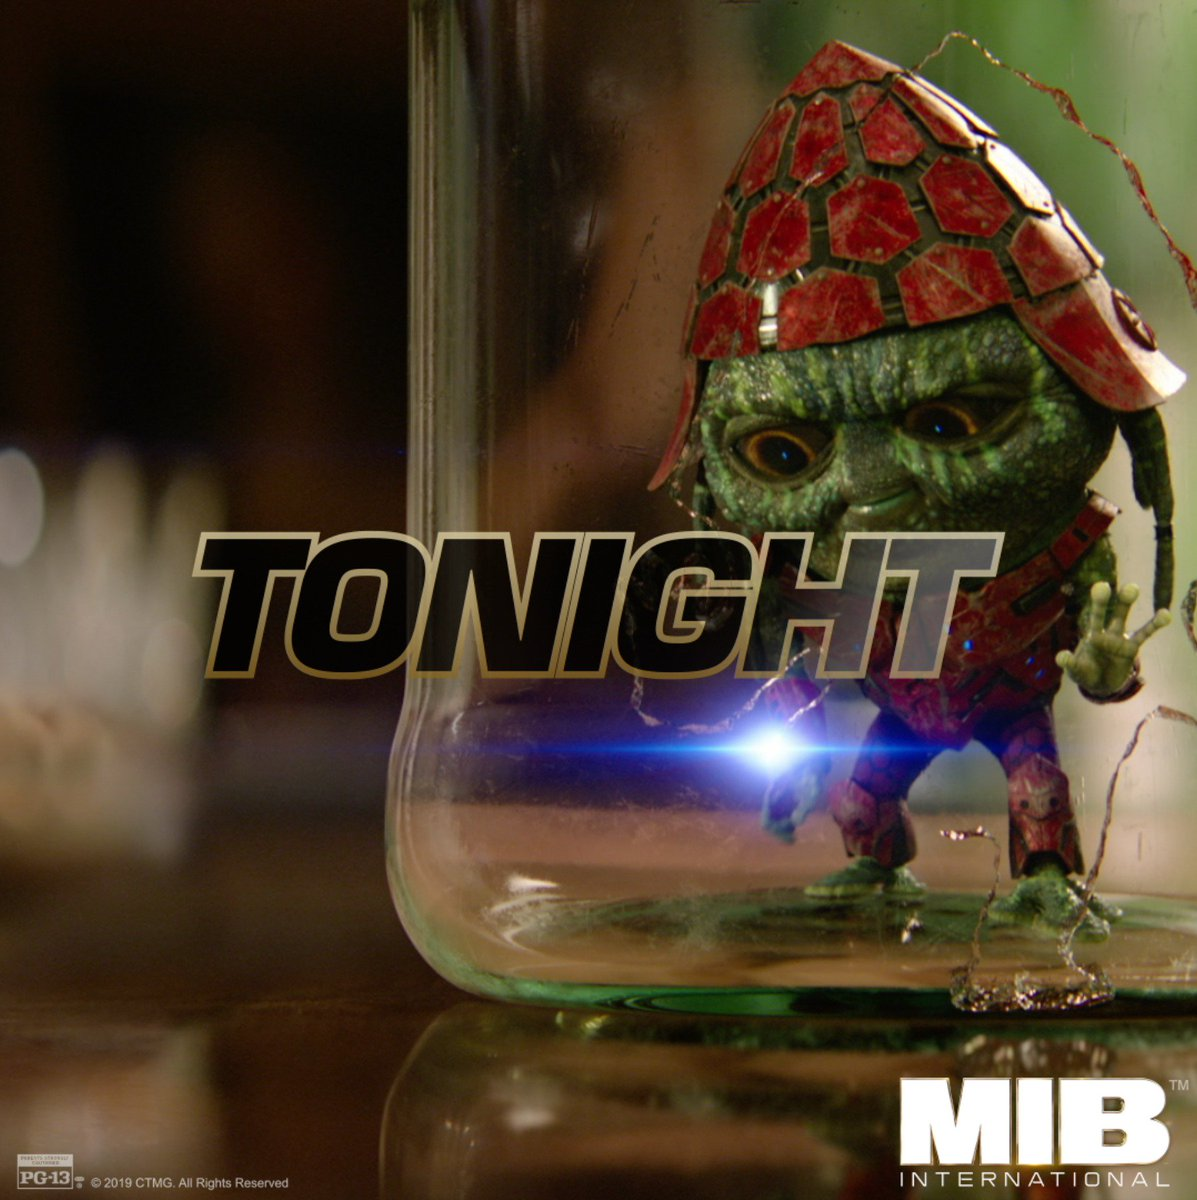 Don't make the mistake of missing out on #MIB! It hits theaters TONIGHT. Get your tickets now: http://bit.ly/MIB-Tix .